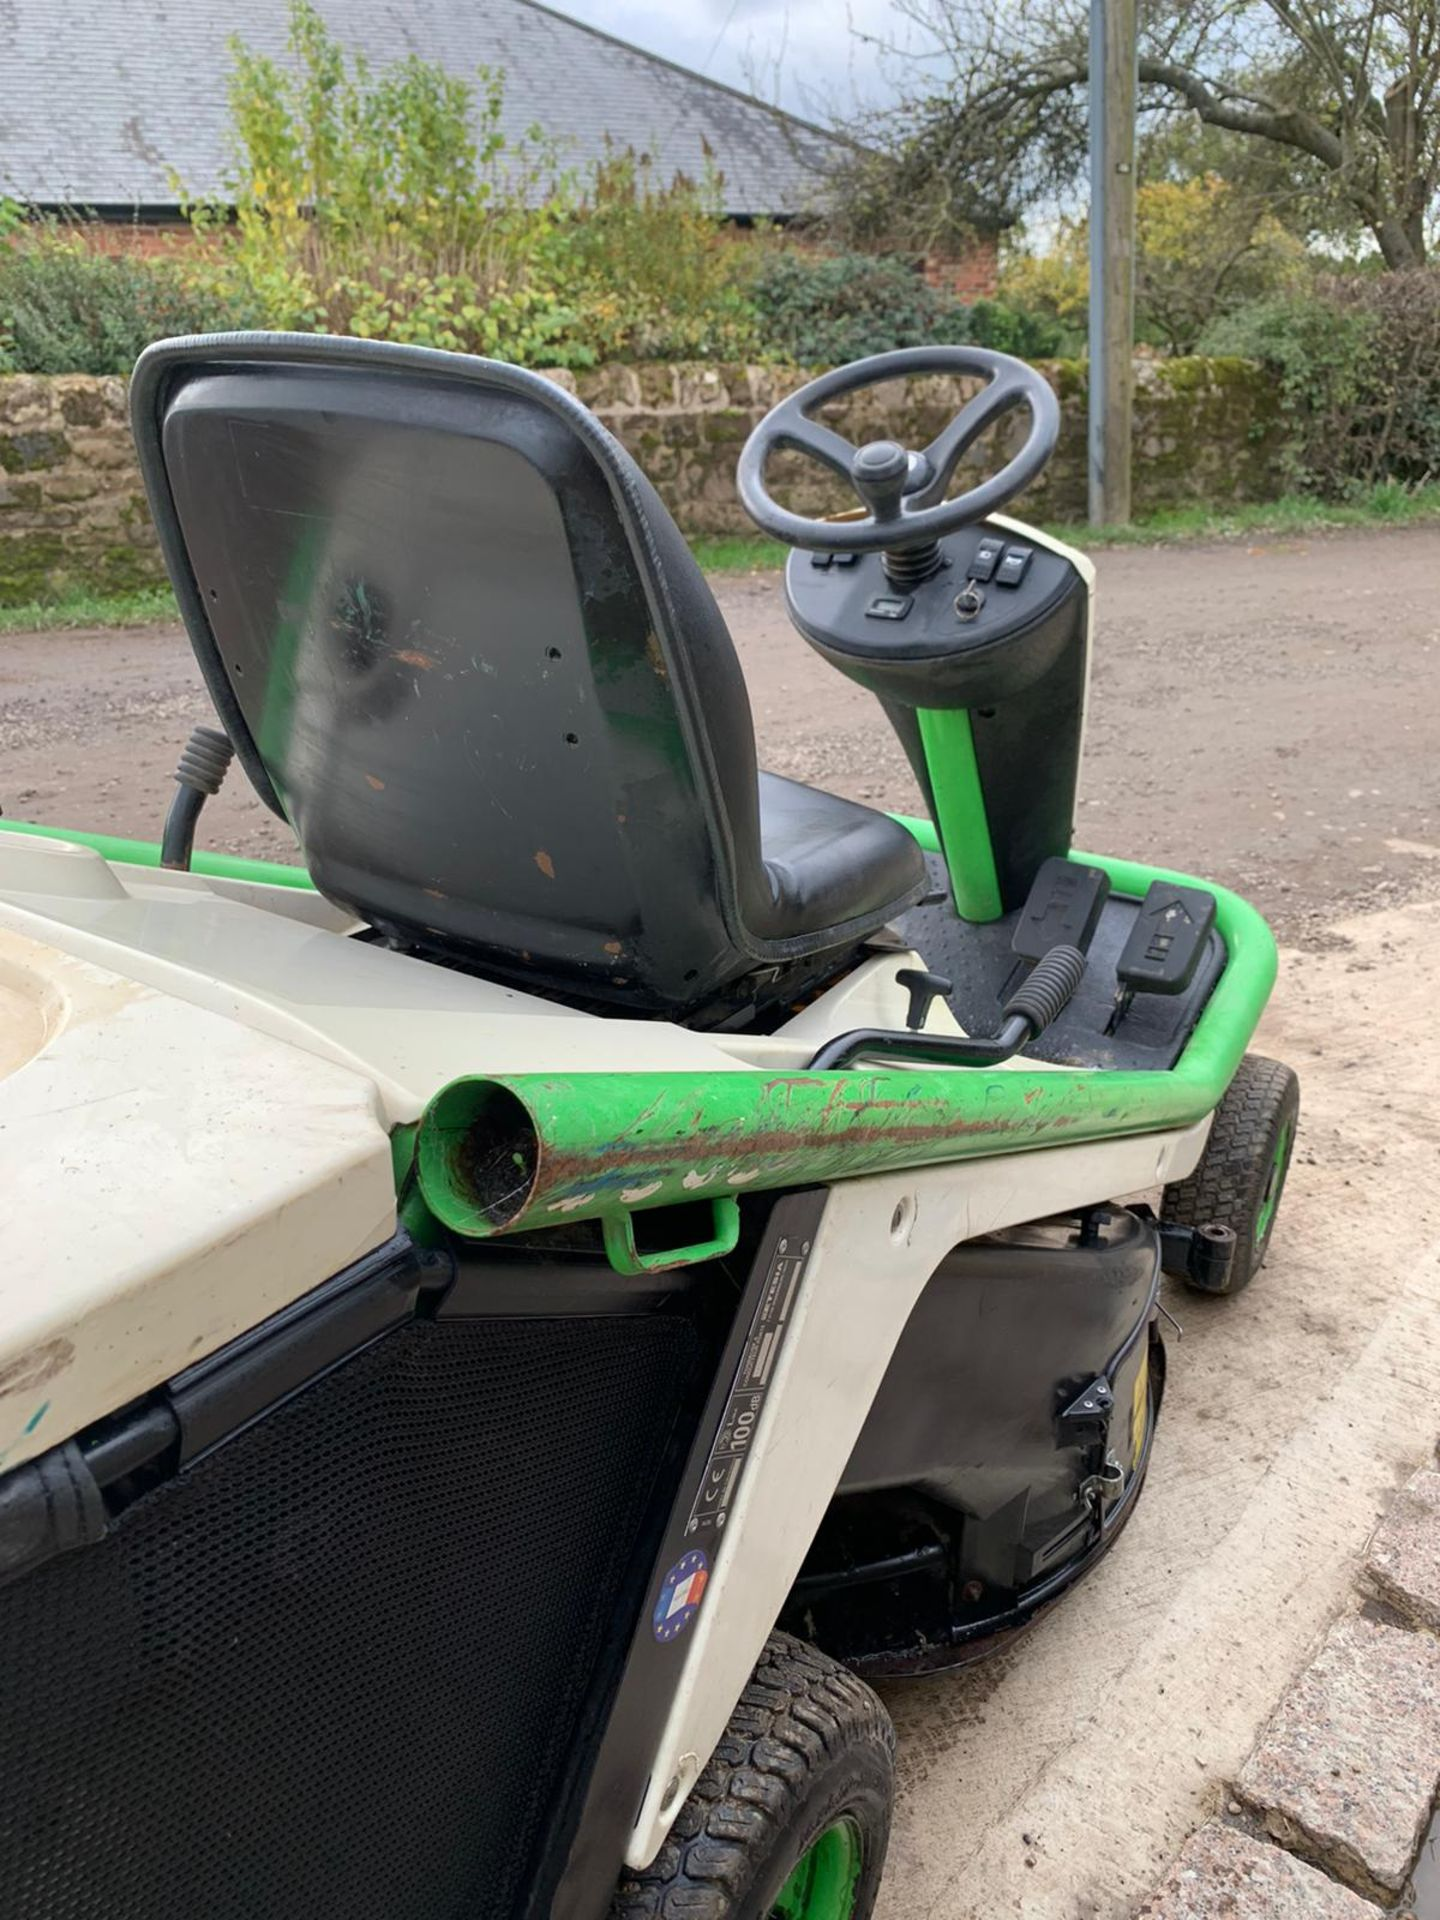 2015 ETESIA HYDRO 80 RIDE ON LAWN MOWER, RUNS, DRIVES AND CUTS *PLUS VAT* - Image 5 of 5